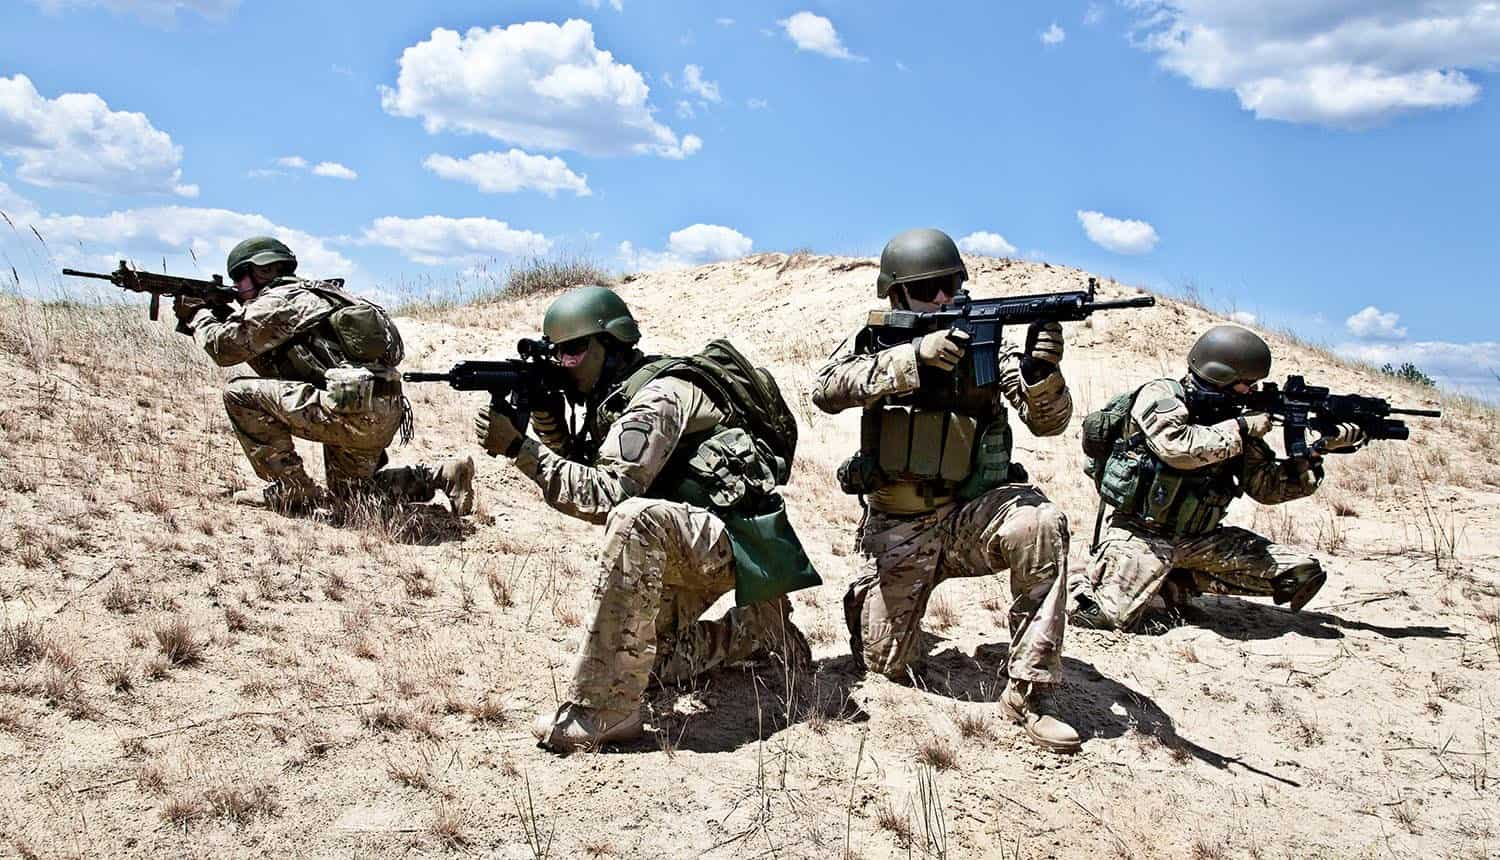 Squad of soldiers in the desert during military operation showing cyber attacks can trigger military response